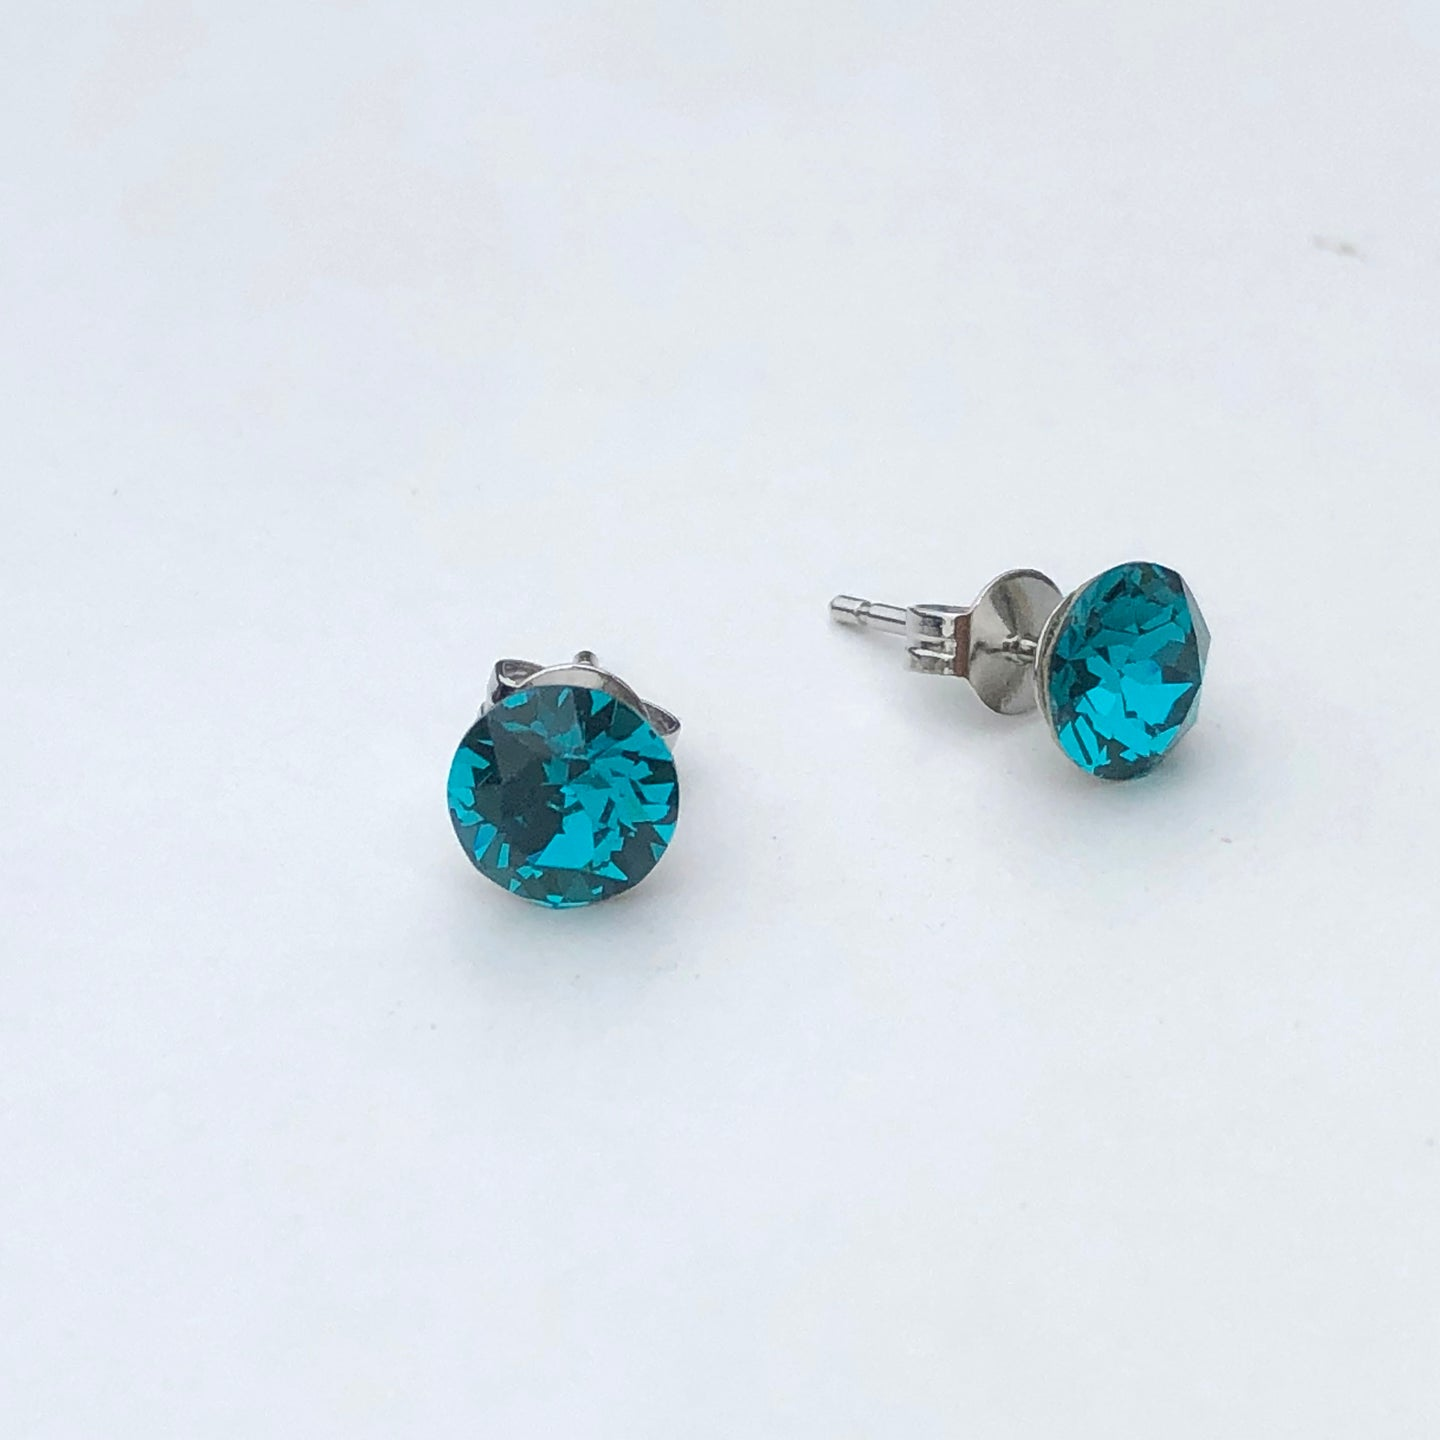 Aqua Swarovski Crystal Stud Earrings